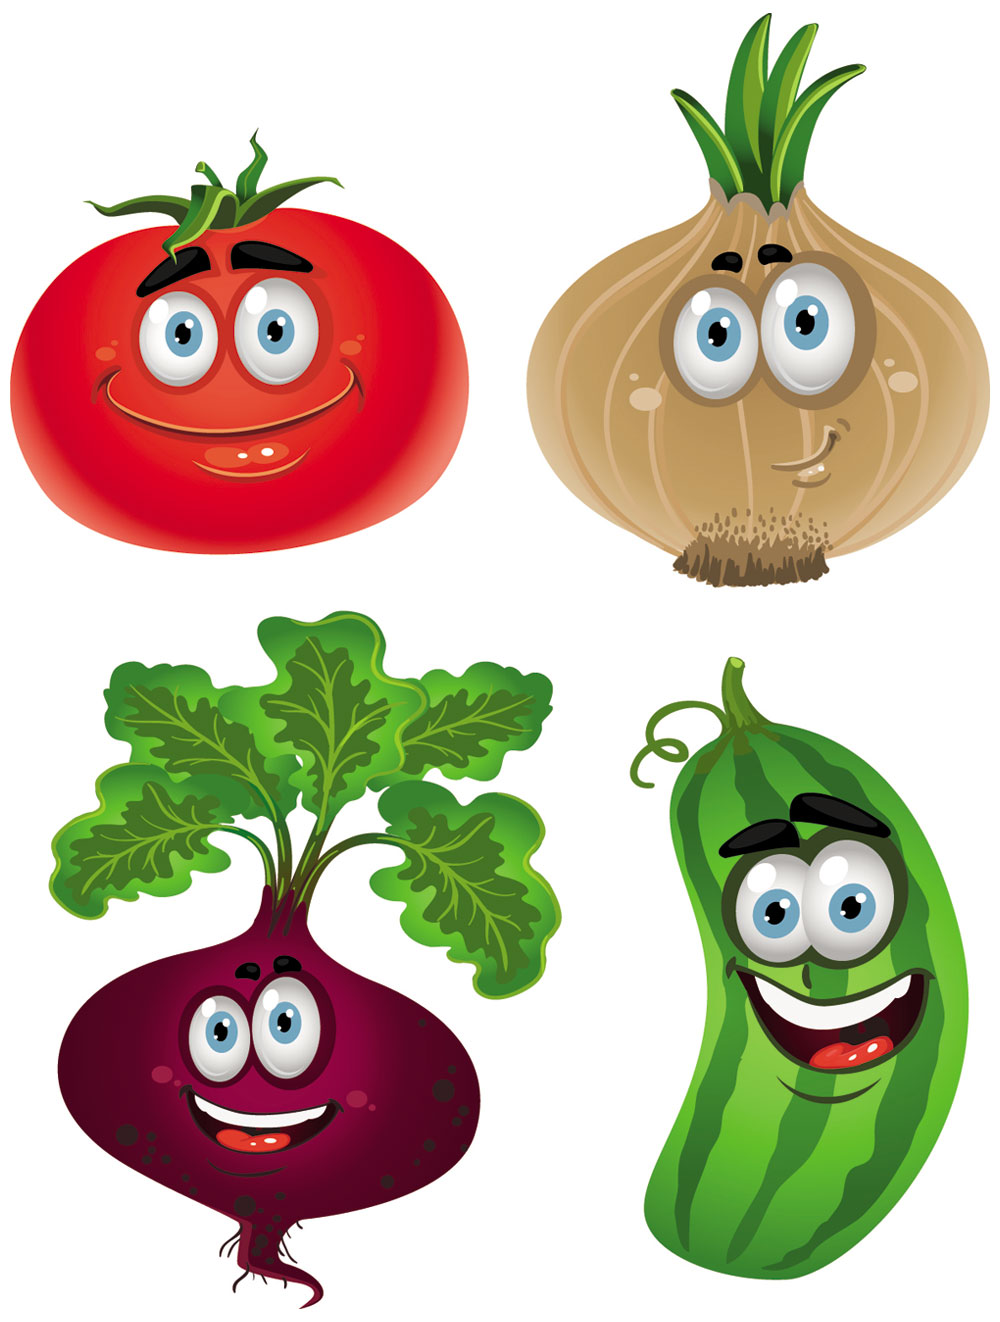 Free Cartoon Vegetables, Download Free Clip Art, Free Clip Art on.